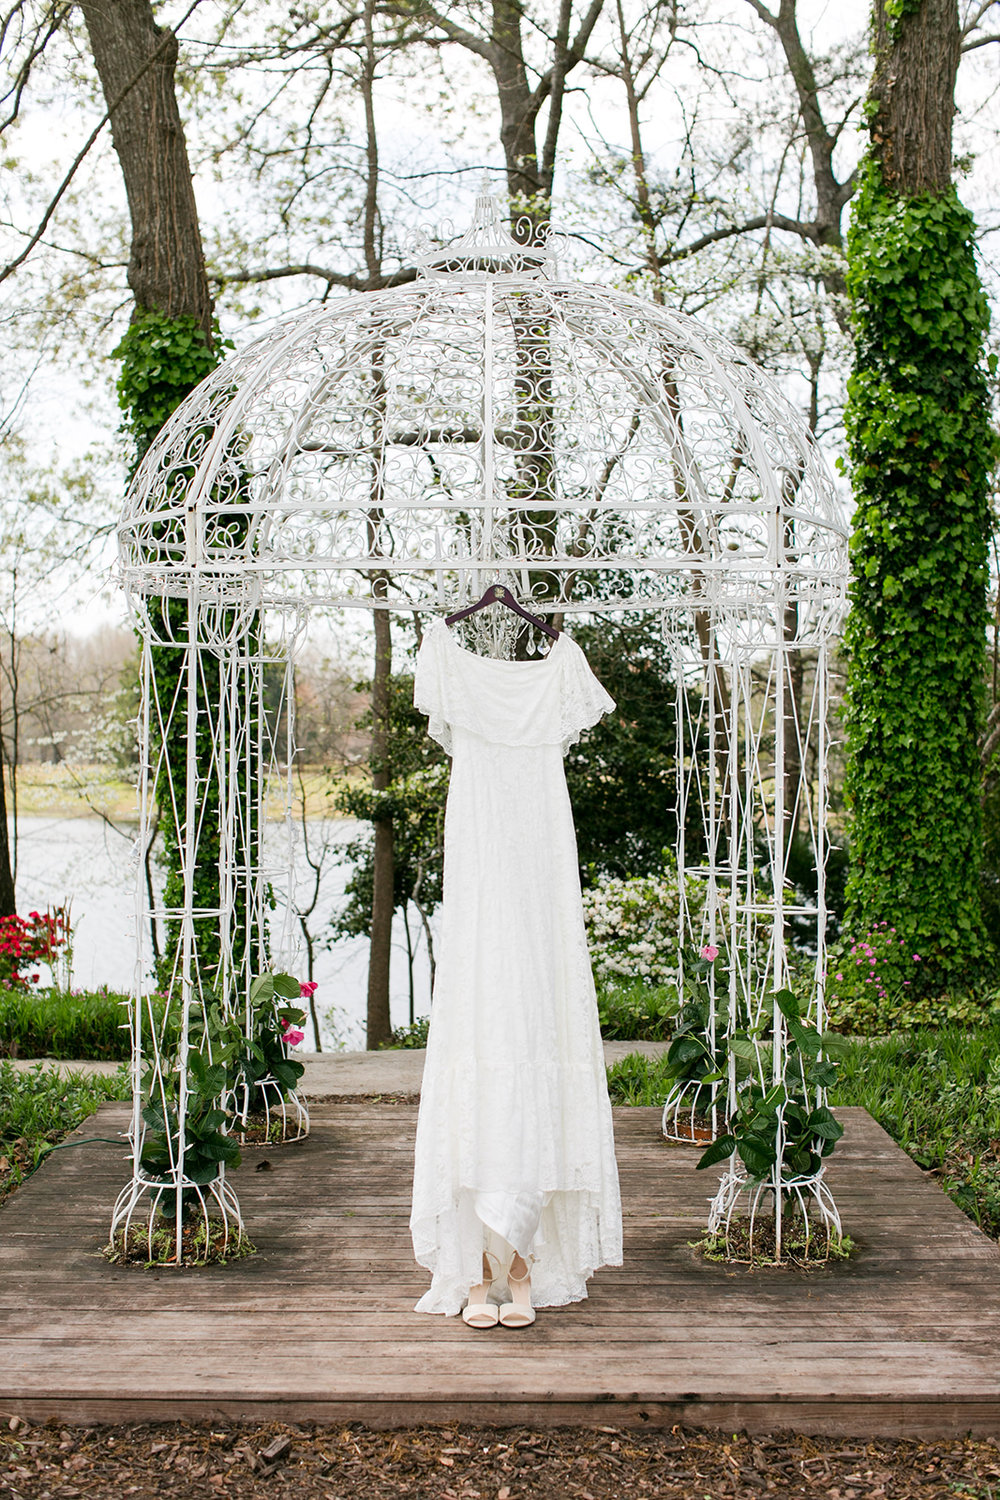 ivory-and-beau-bridal-boutique-i-and-b-bride-hillary-sidney-middlebrooks-photography-winnie-daughters-of-simone-the-venue-at-tryphena's-garden-1.jpg